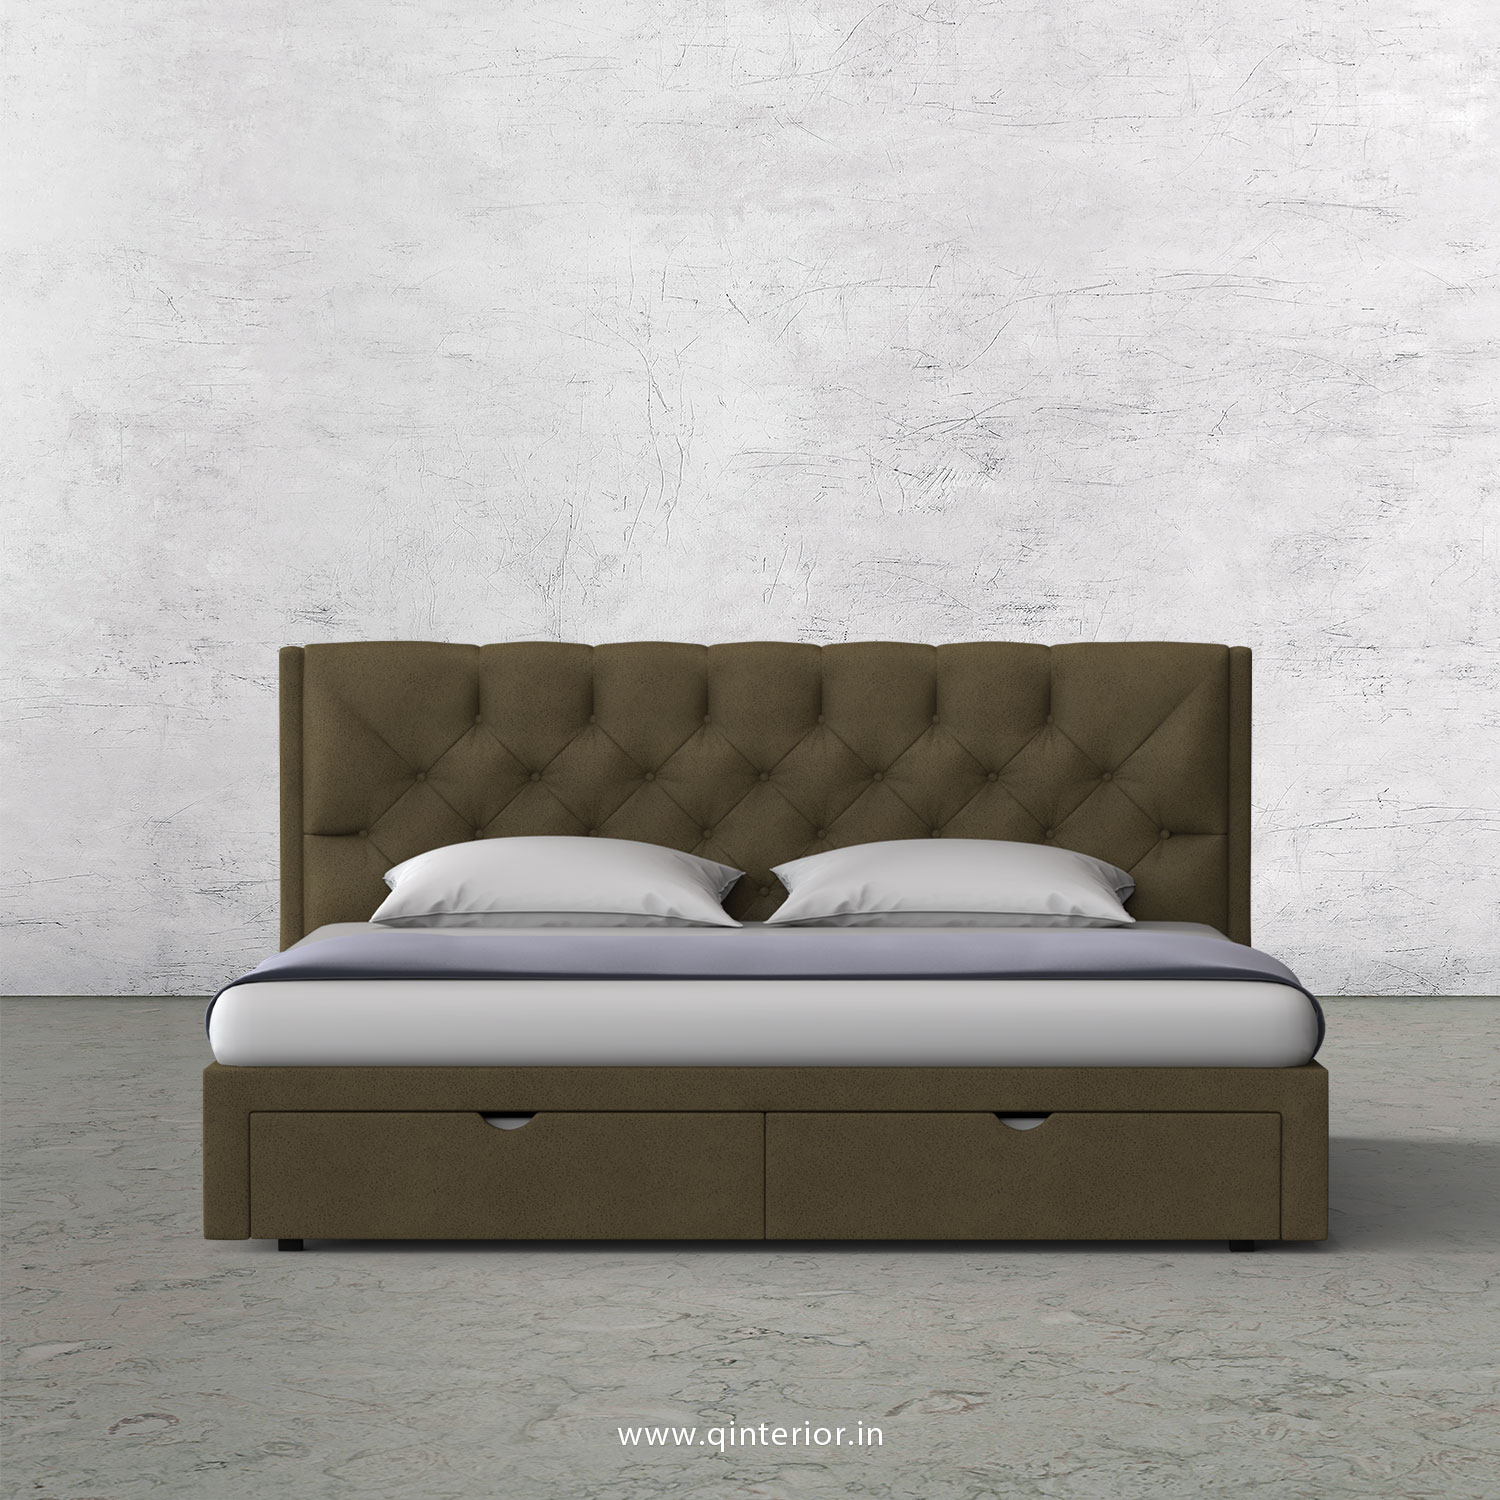 Scorpius King Size Storage Bed in Fab Leather Fabric - KBD001 FL01